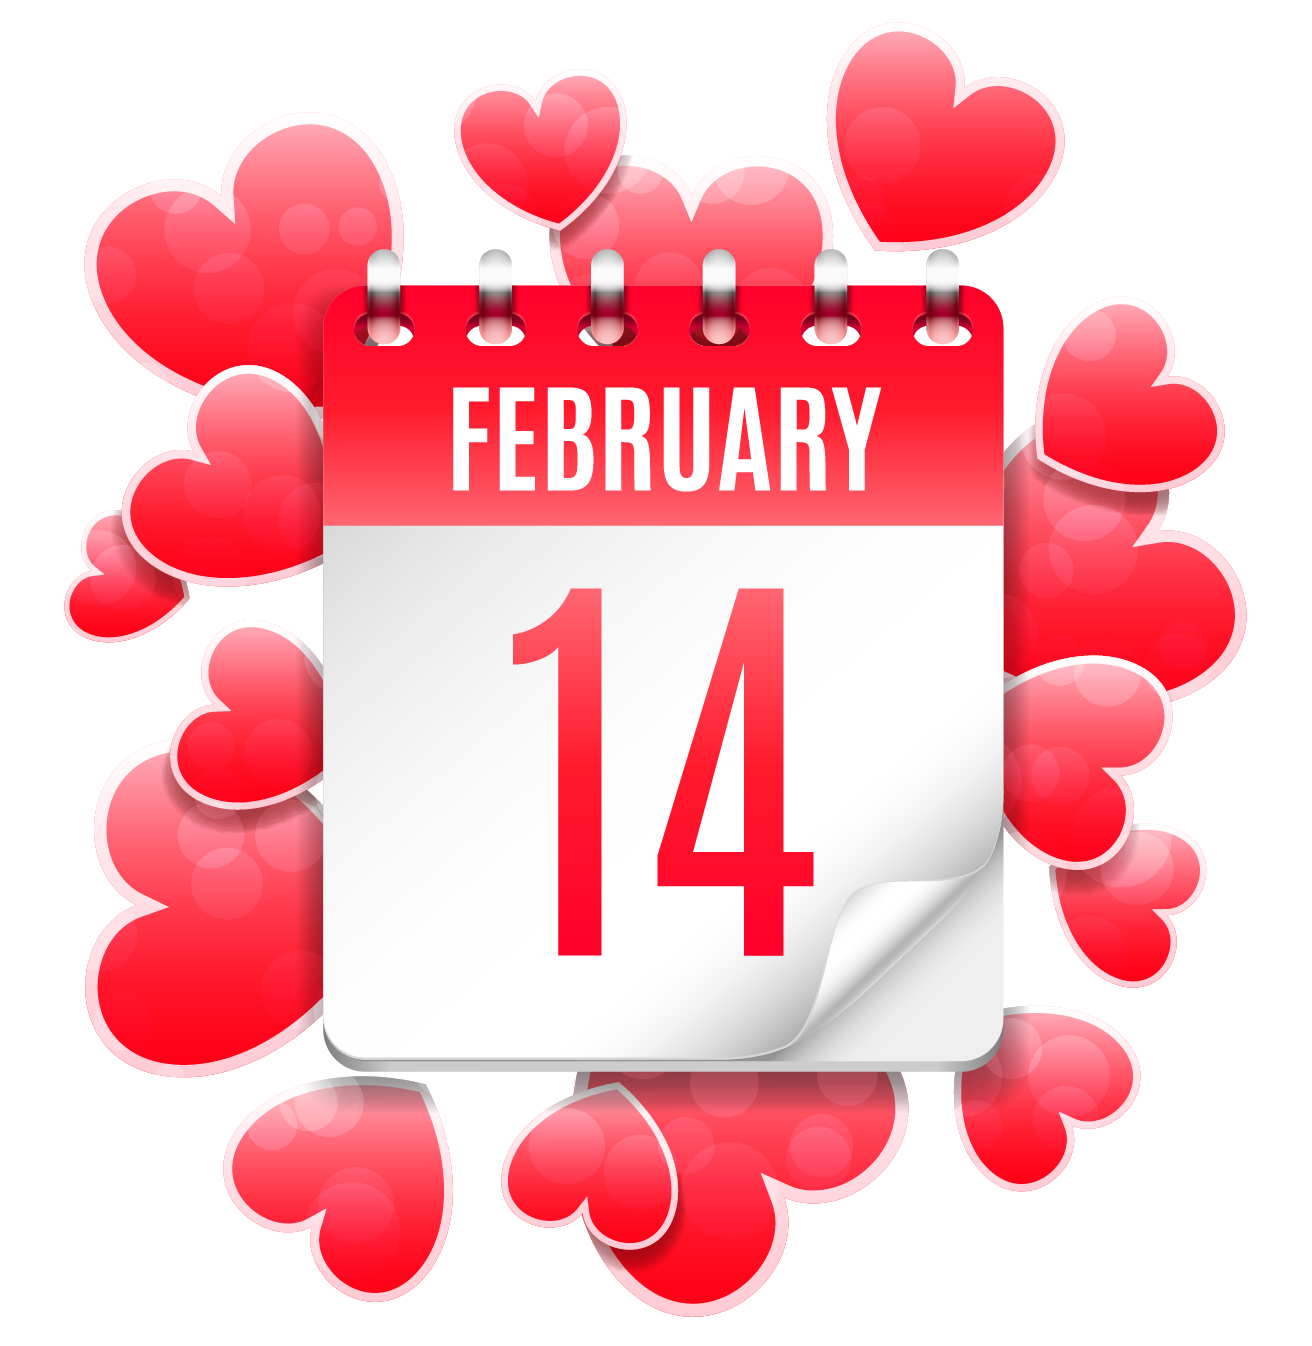 February 14 clipart freeuse library Download Heart February 14 Valentine\'S Festival Greeting Mid Clipart ... freeuse library